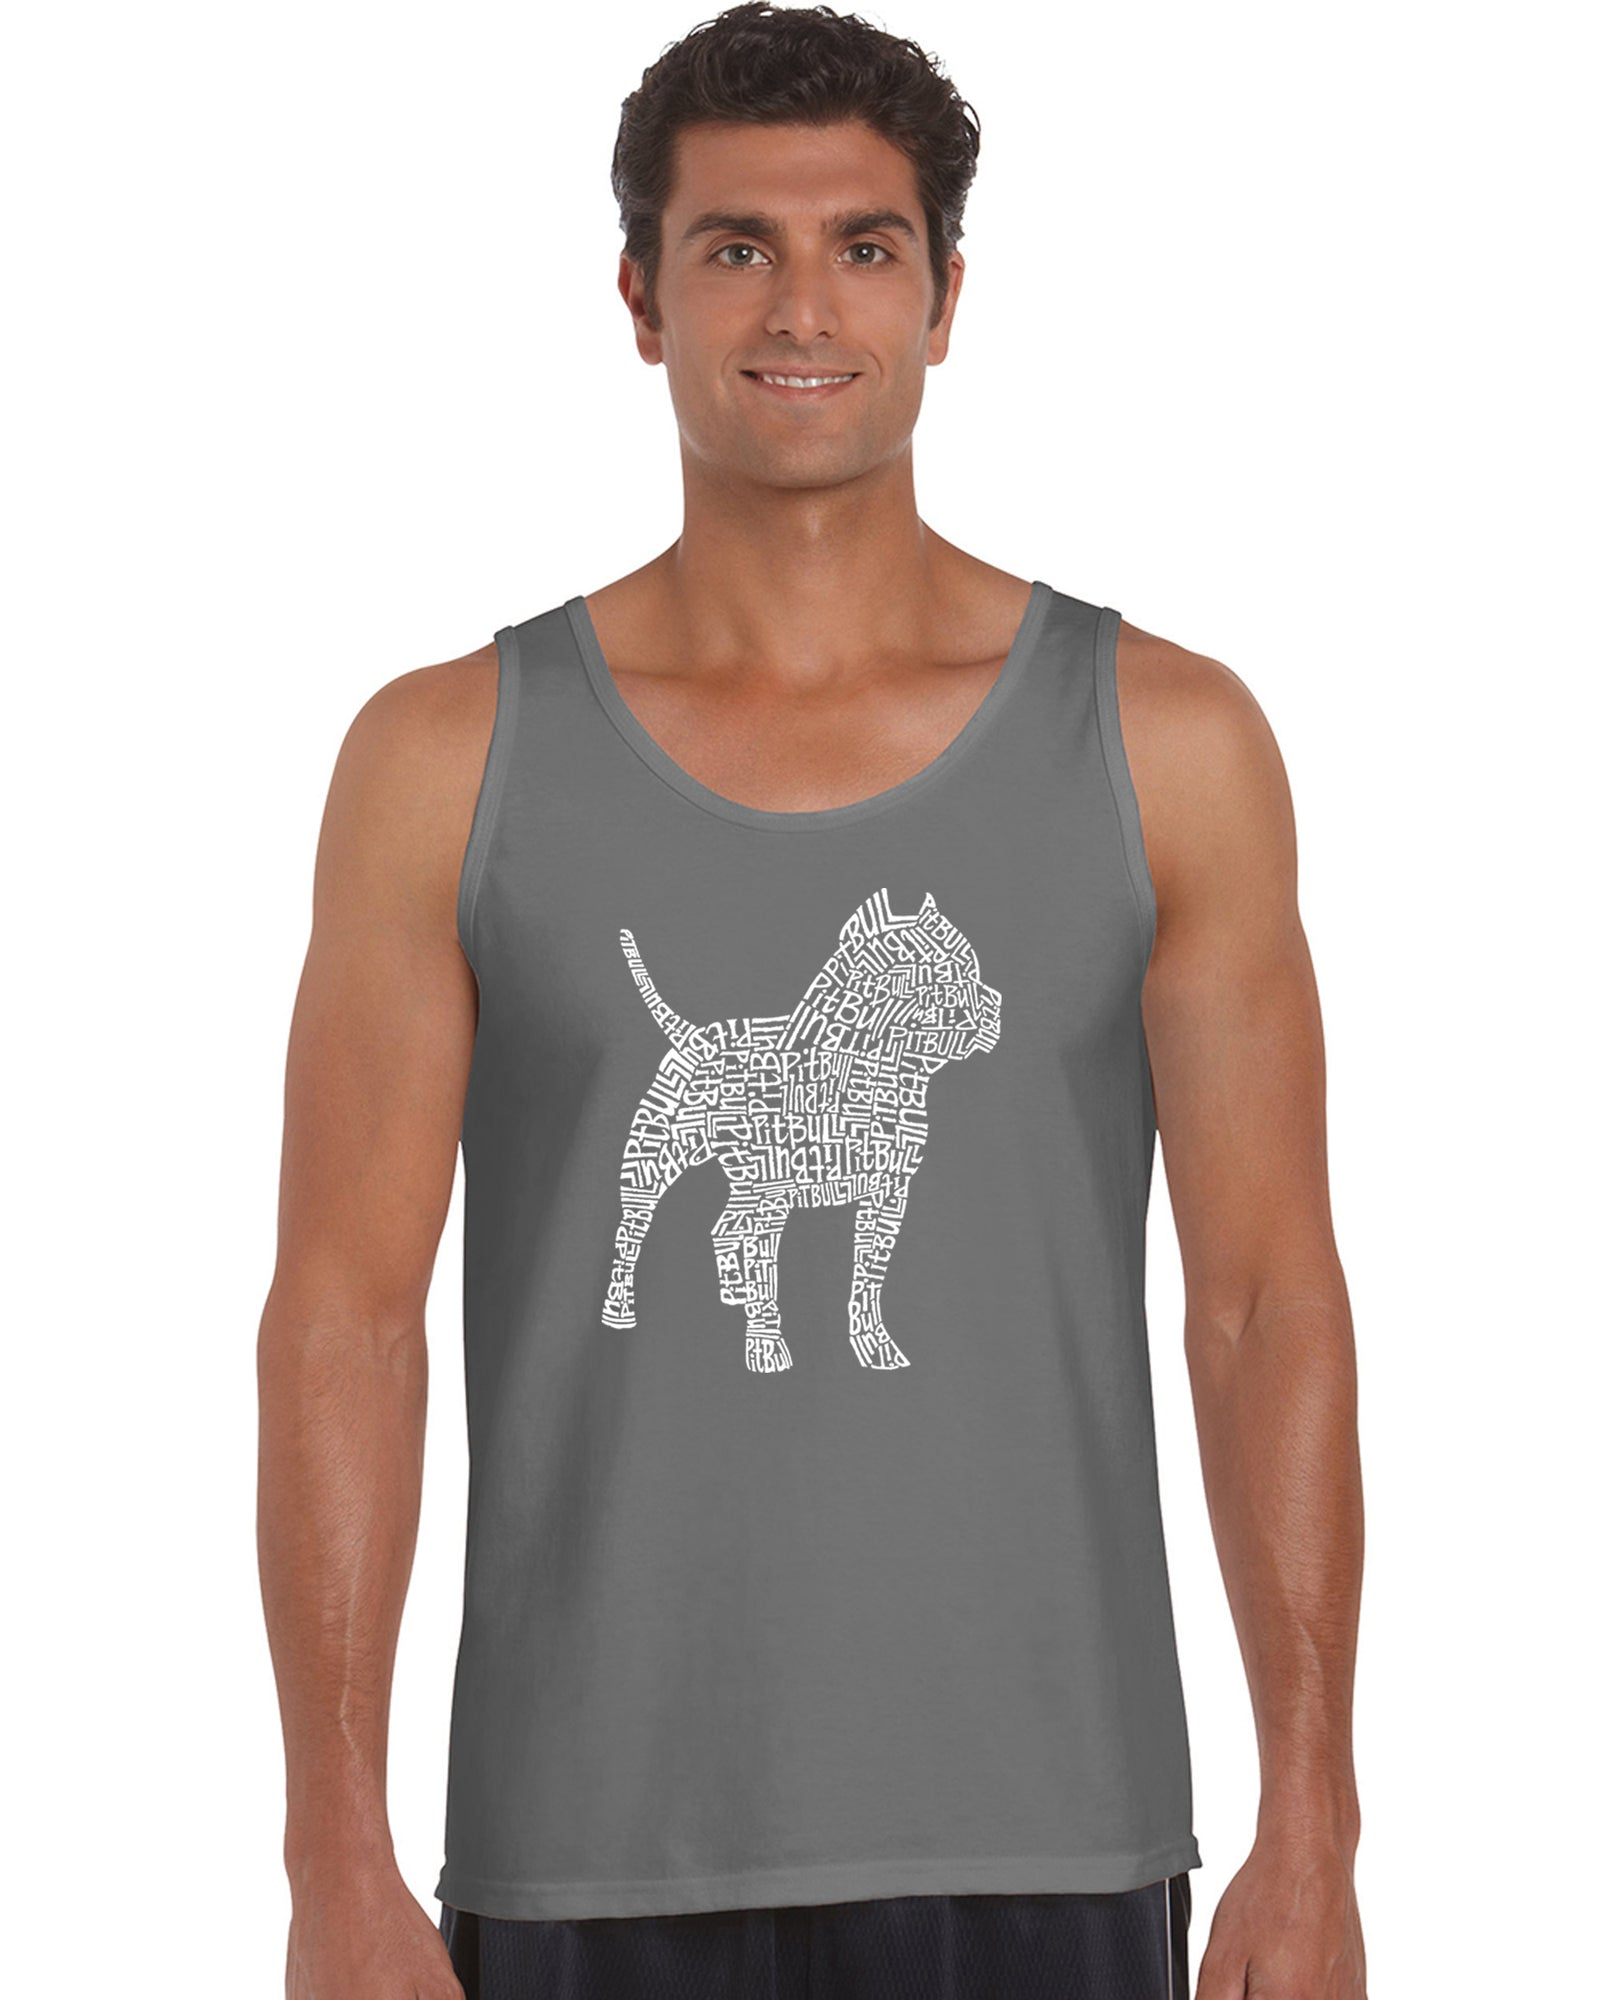 Mens Tank Top - PitBull